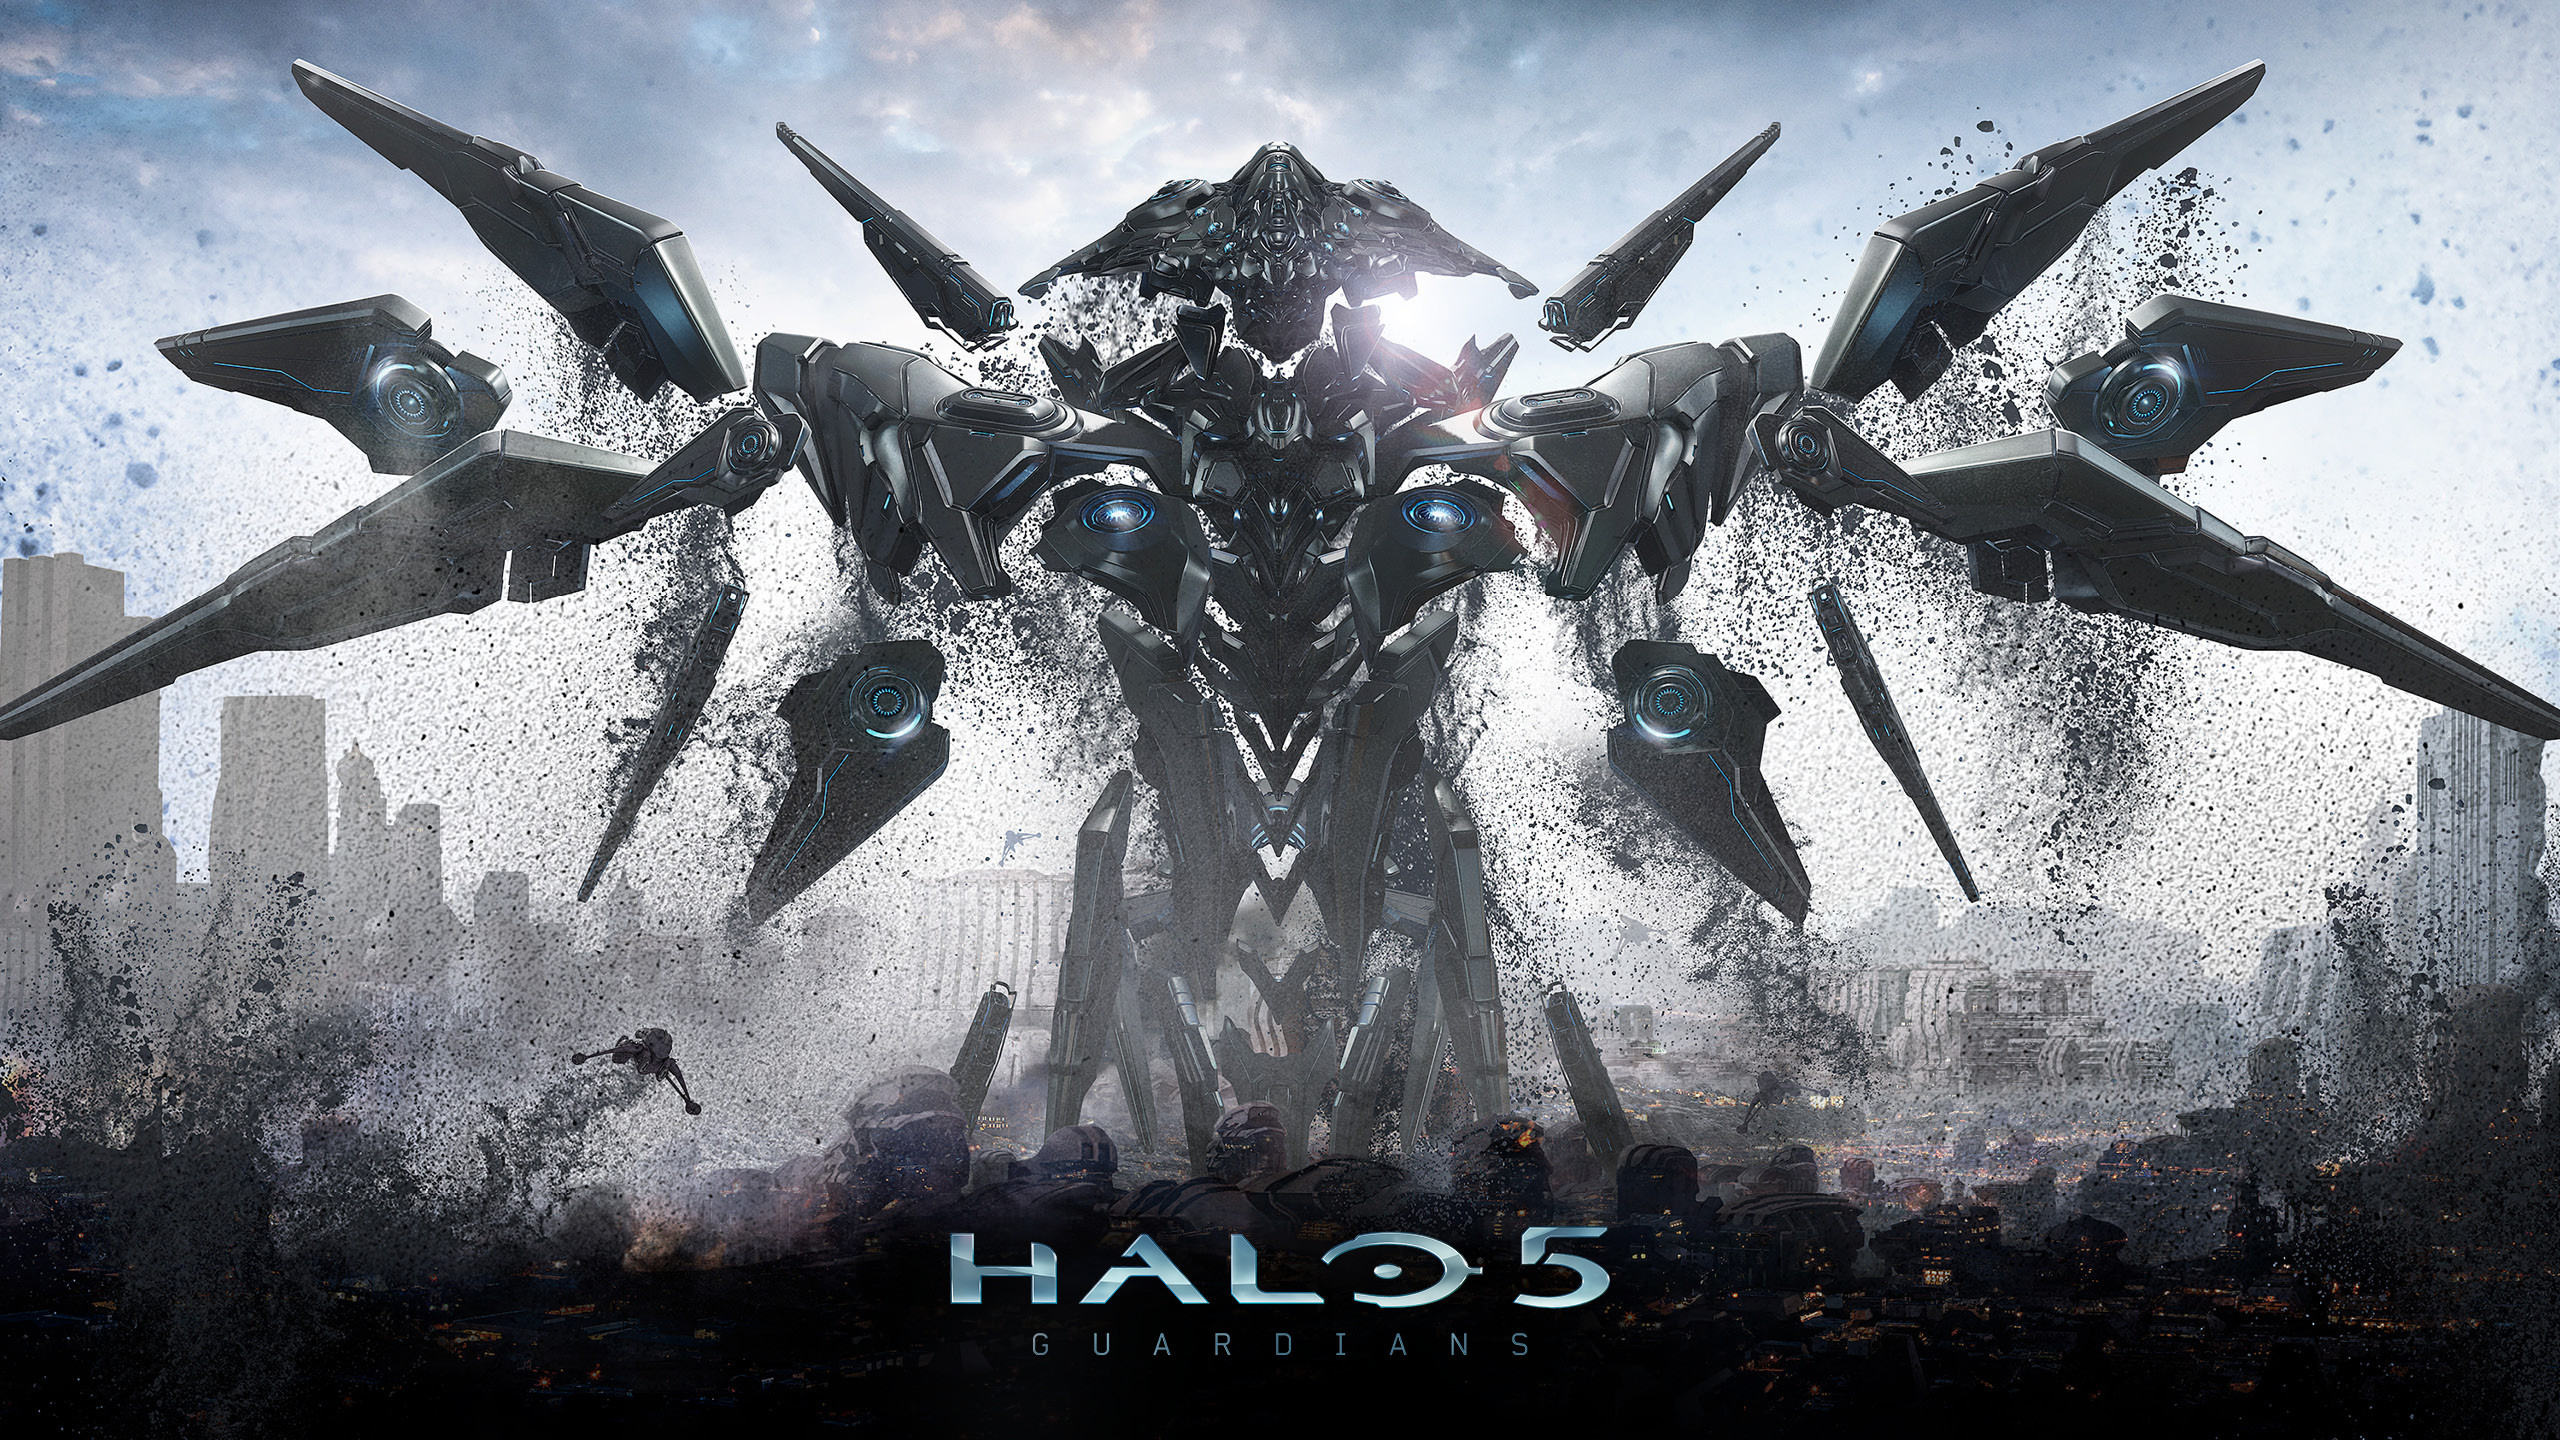 Guardian Halo 5 Guardians Wallpapers HD Wallpapers 2560x1440